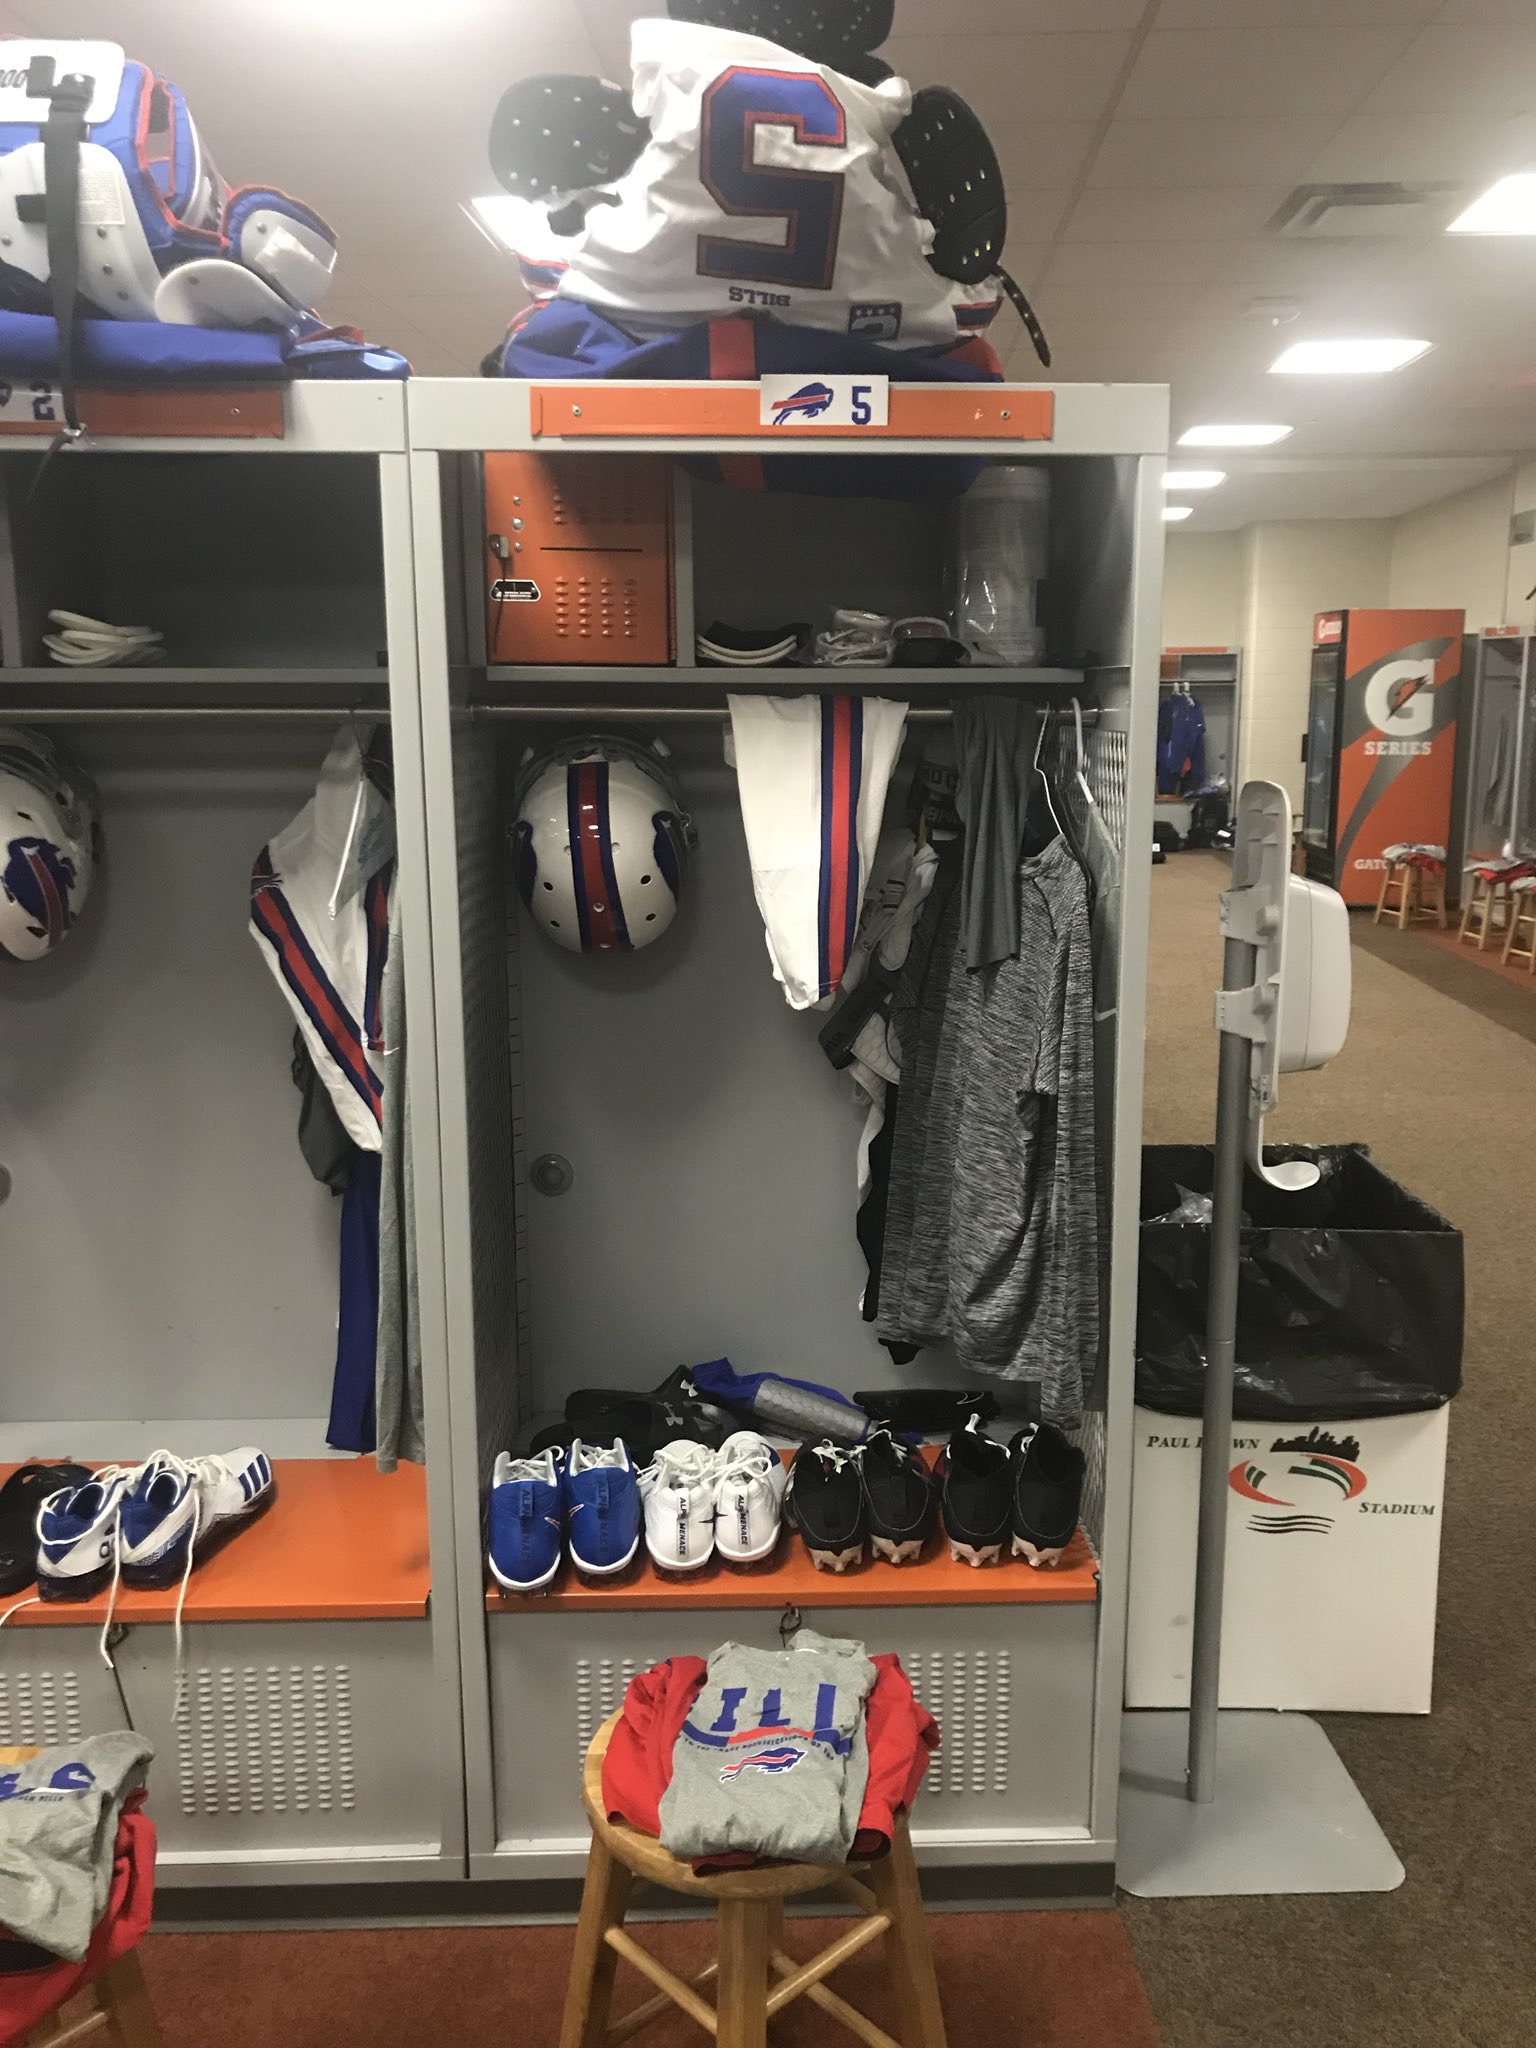 White jerseys and white pants tomorrow in Cincy Go #Bills https://t.co/a4wXSIinkj